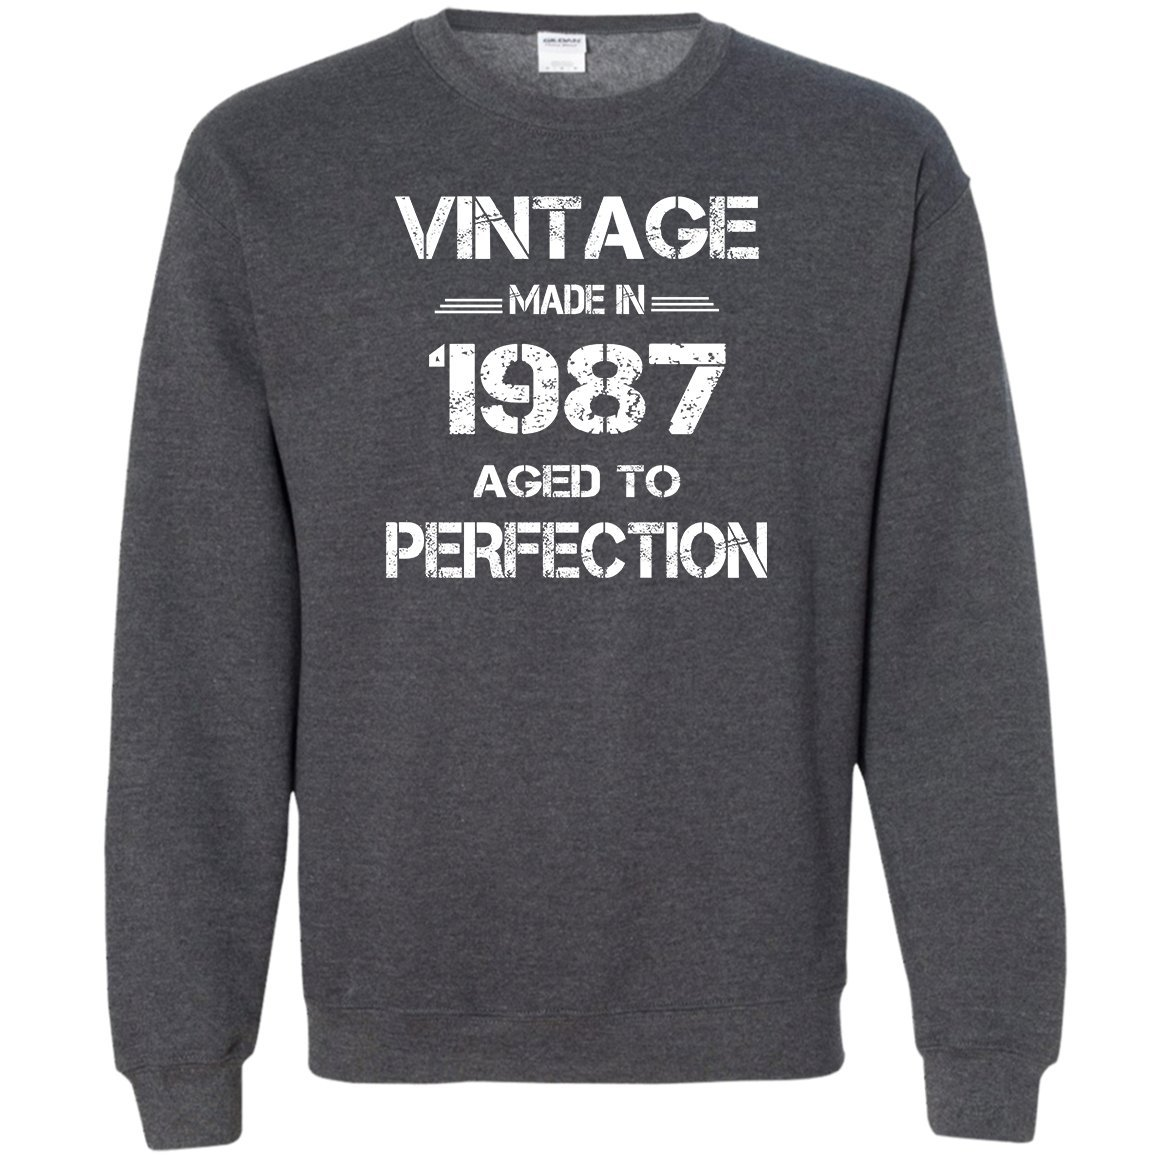 Vintage Made In 1987 Aged To Perfect Shirt 1987 Vintage Sweatshirt